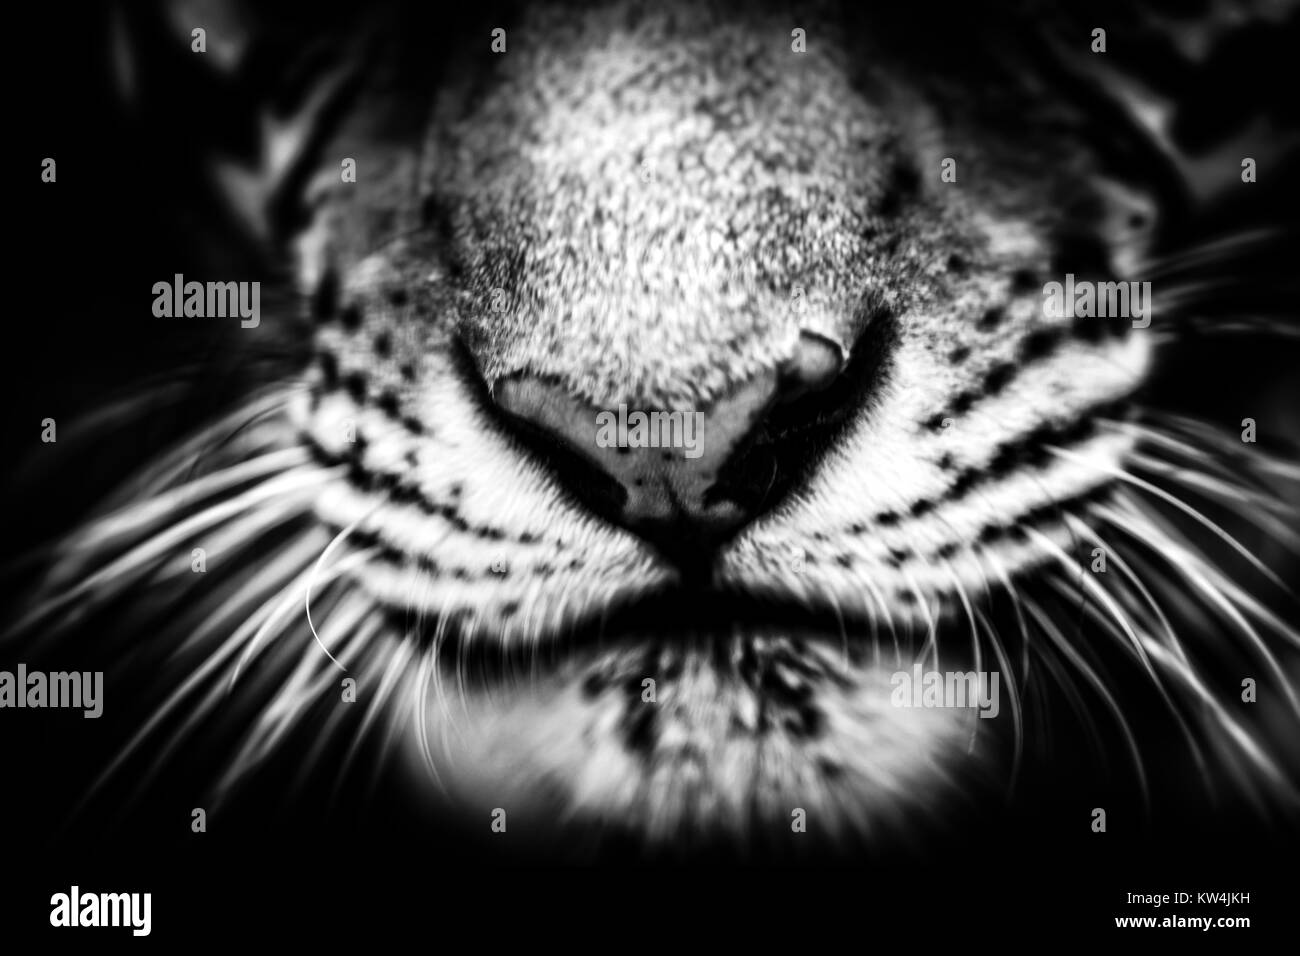 tiger nose closeup - Stock Image